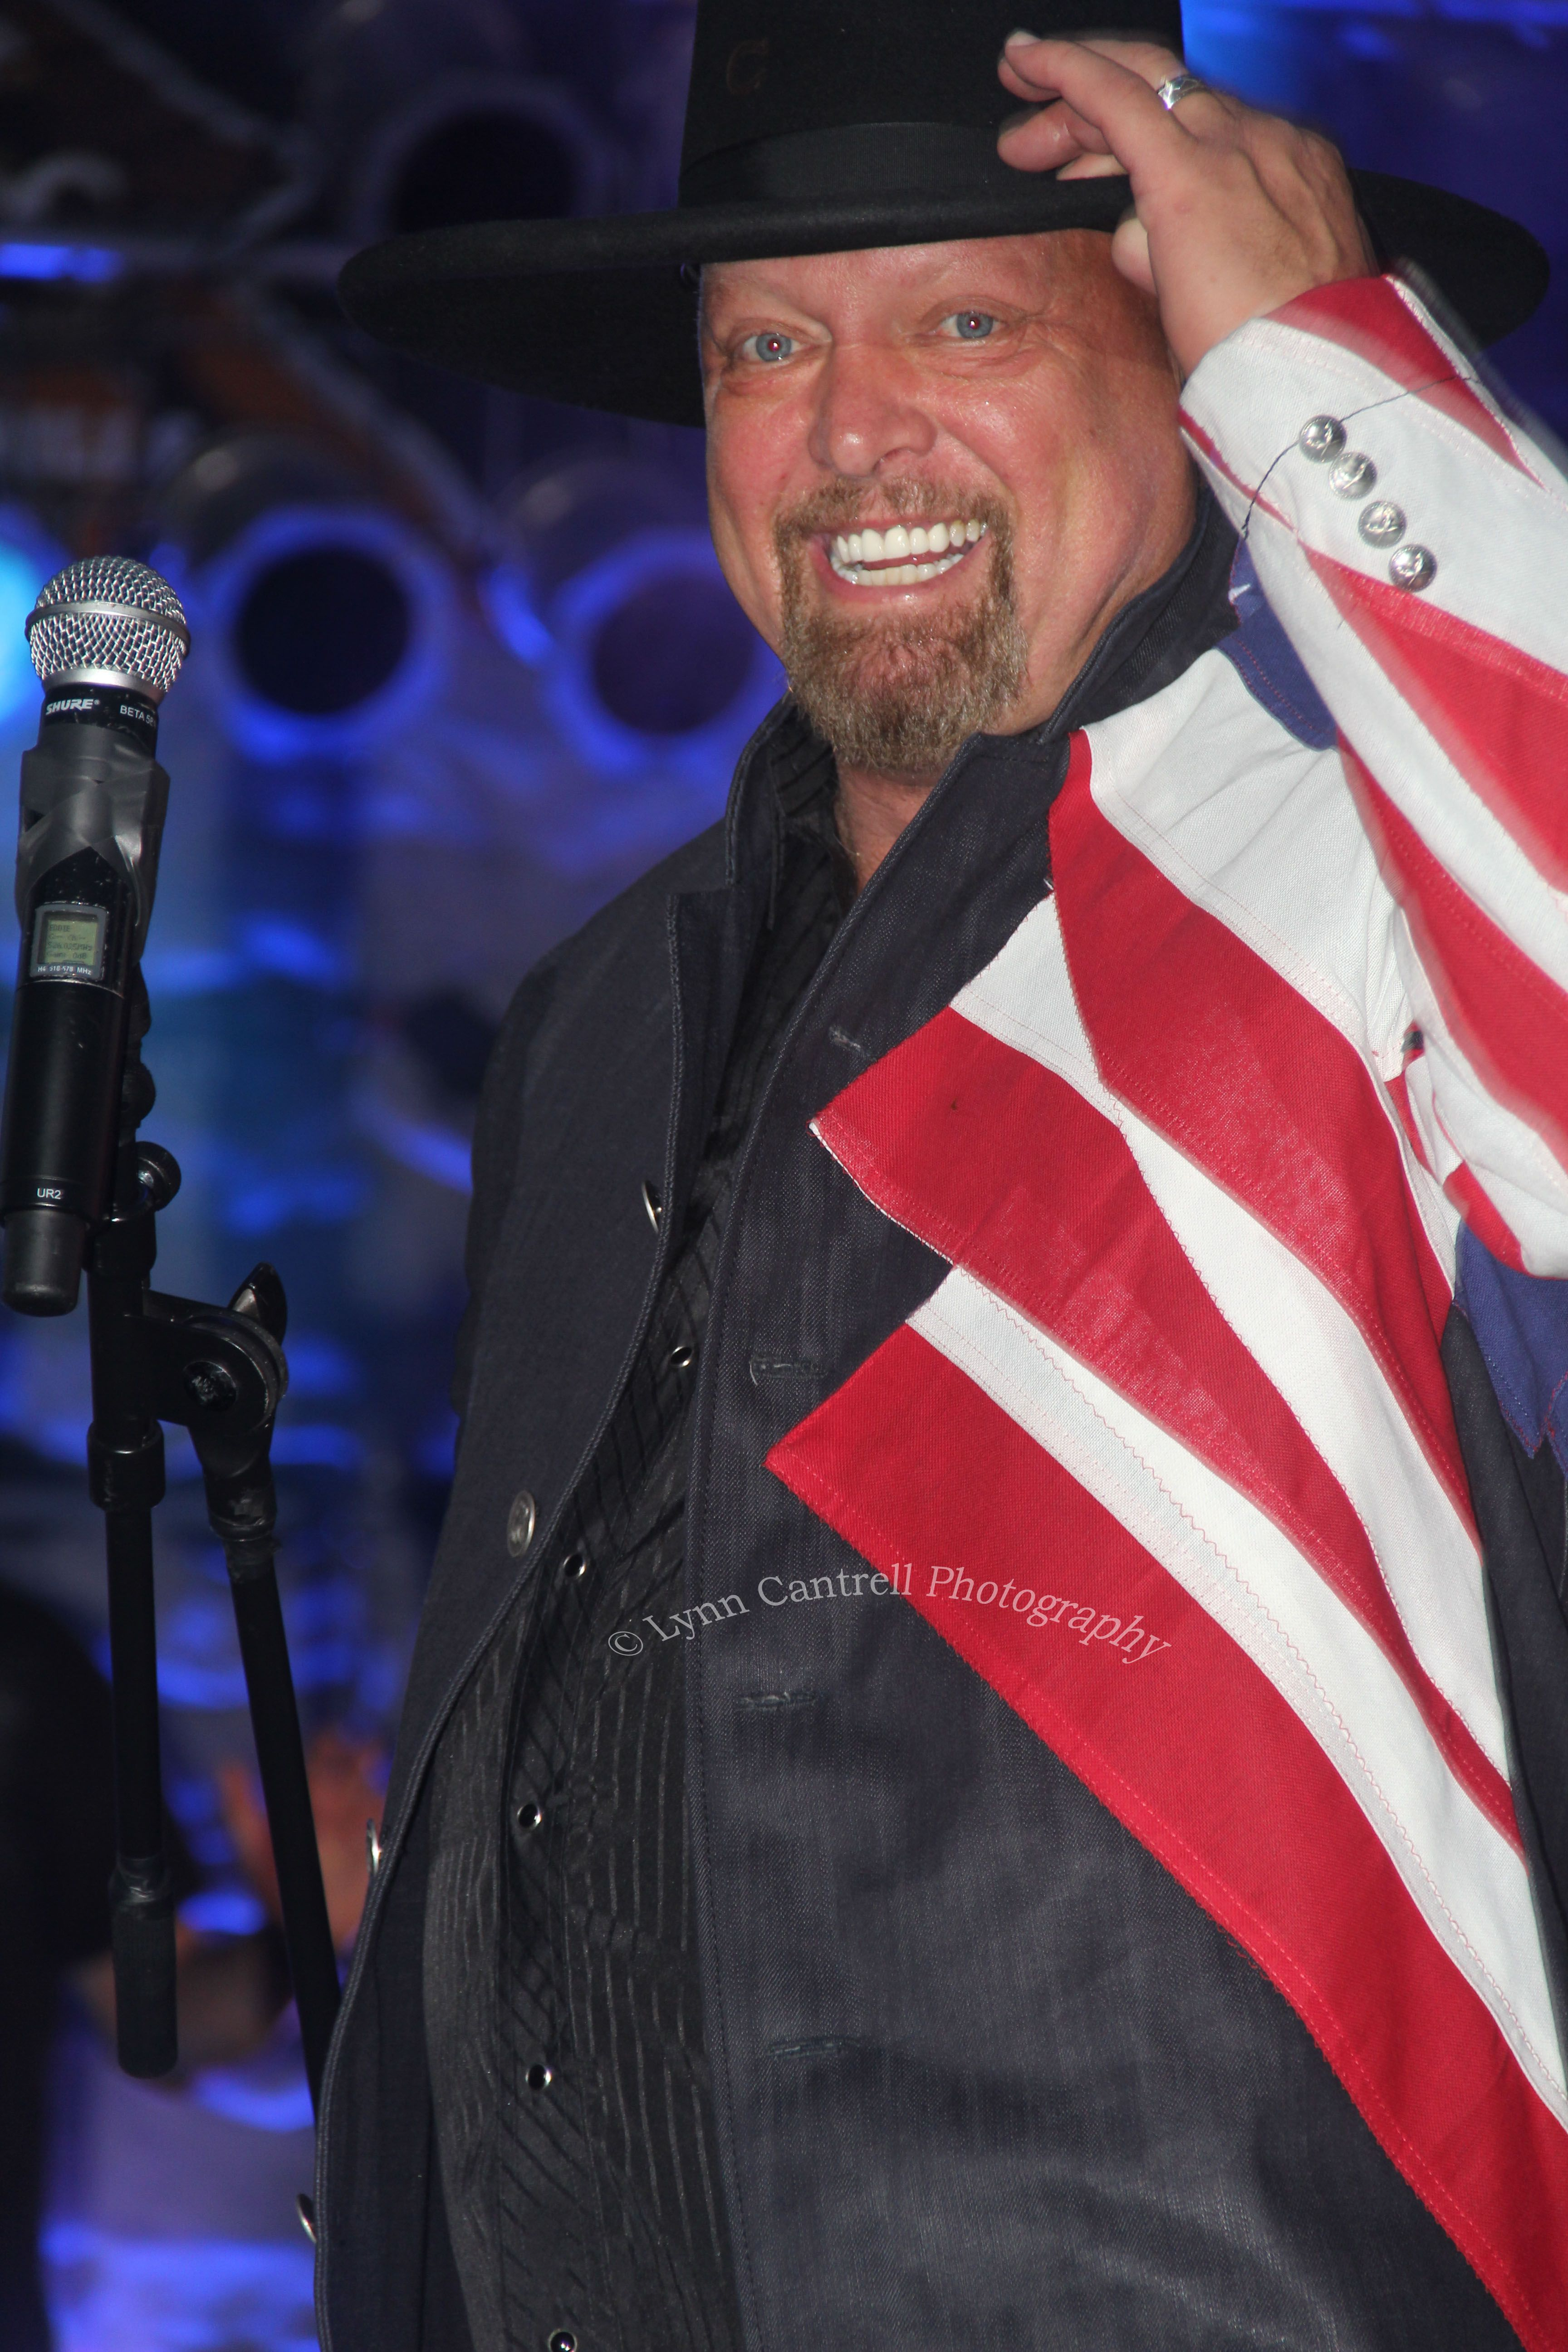 Montgomery Gentry at the Tennessee State H.O.G. Rally